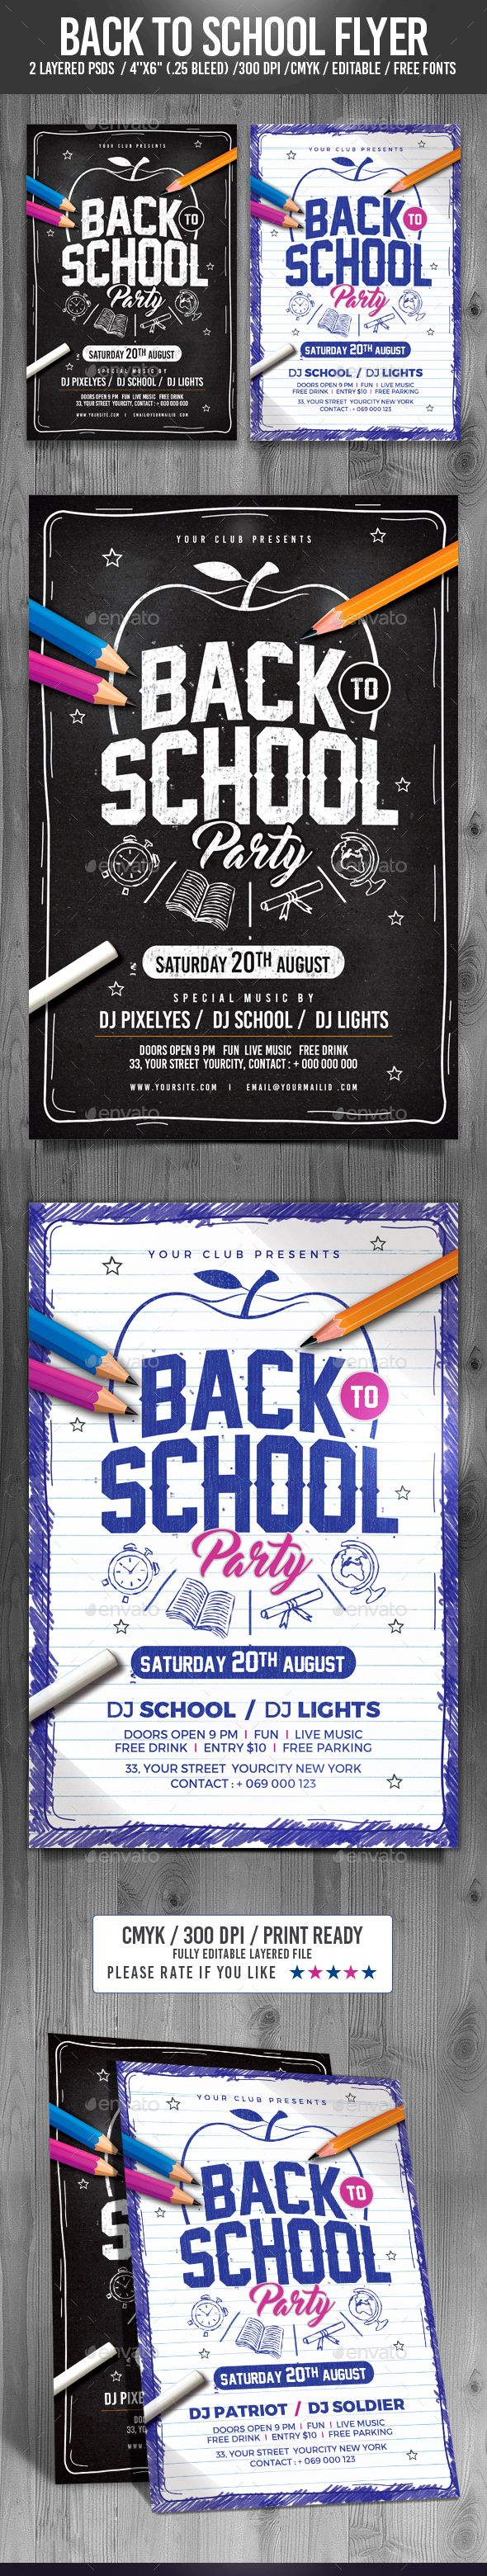 Back to School Flyer — Photoshop PSD #party flyer #back to school ...